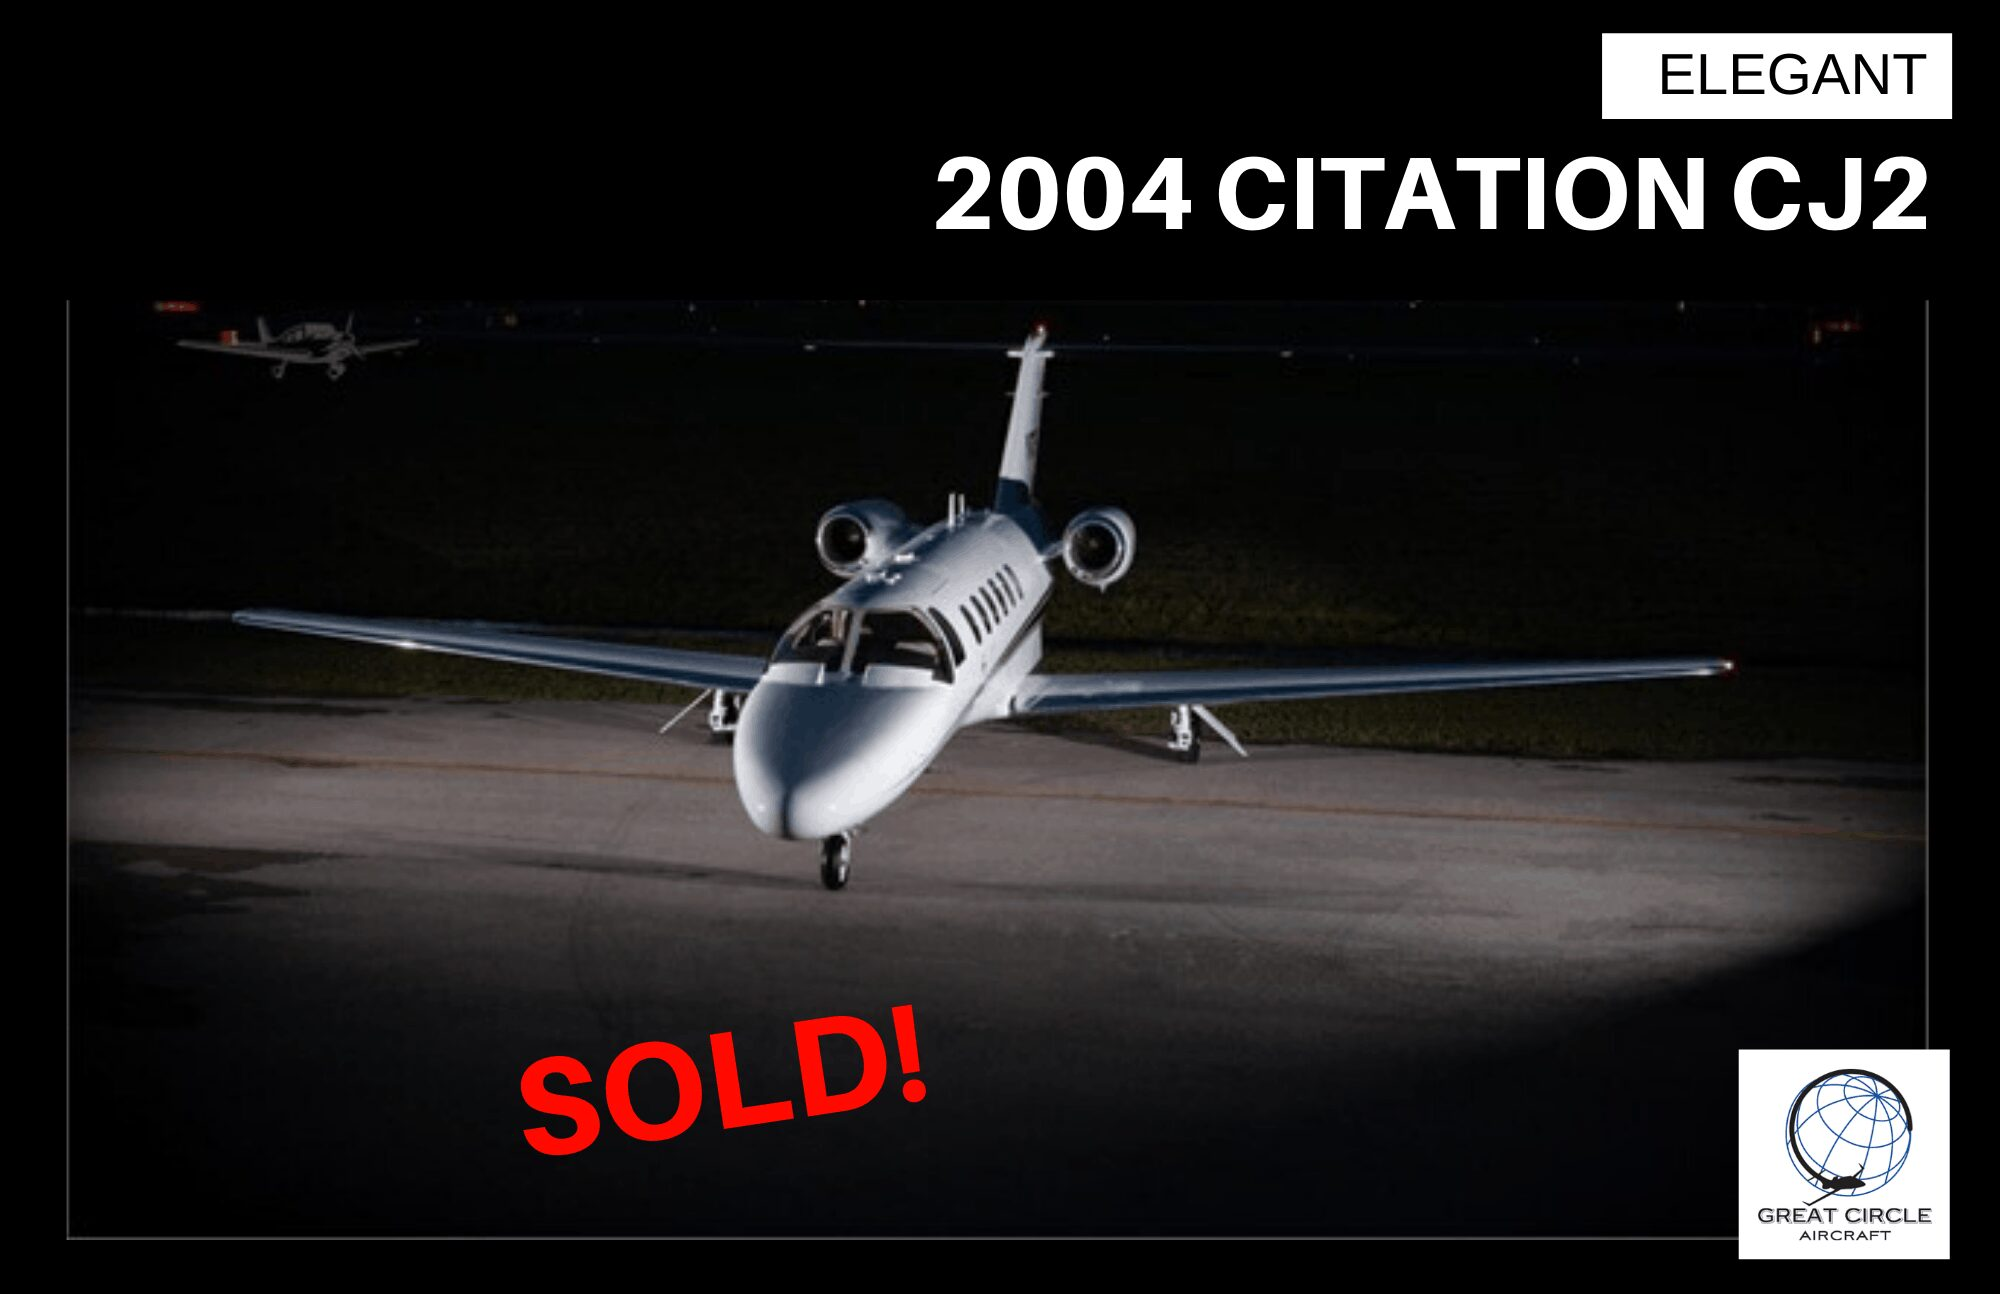 2004 Citation CJ2 – Sold!